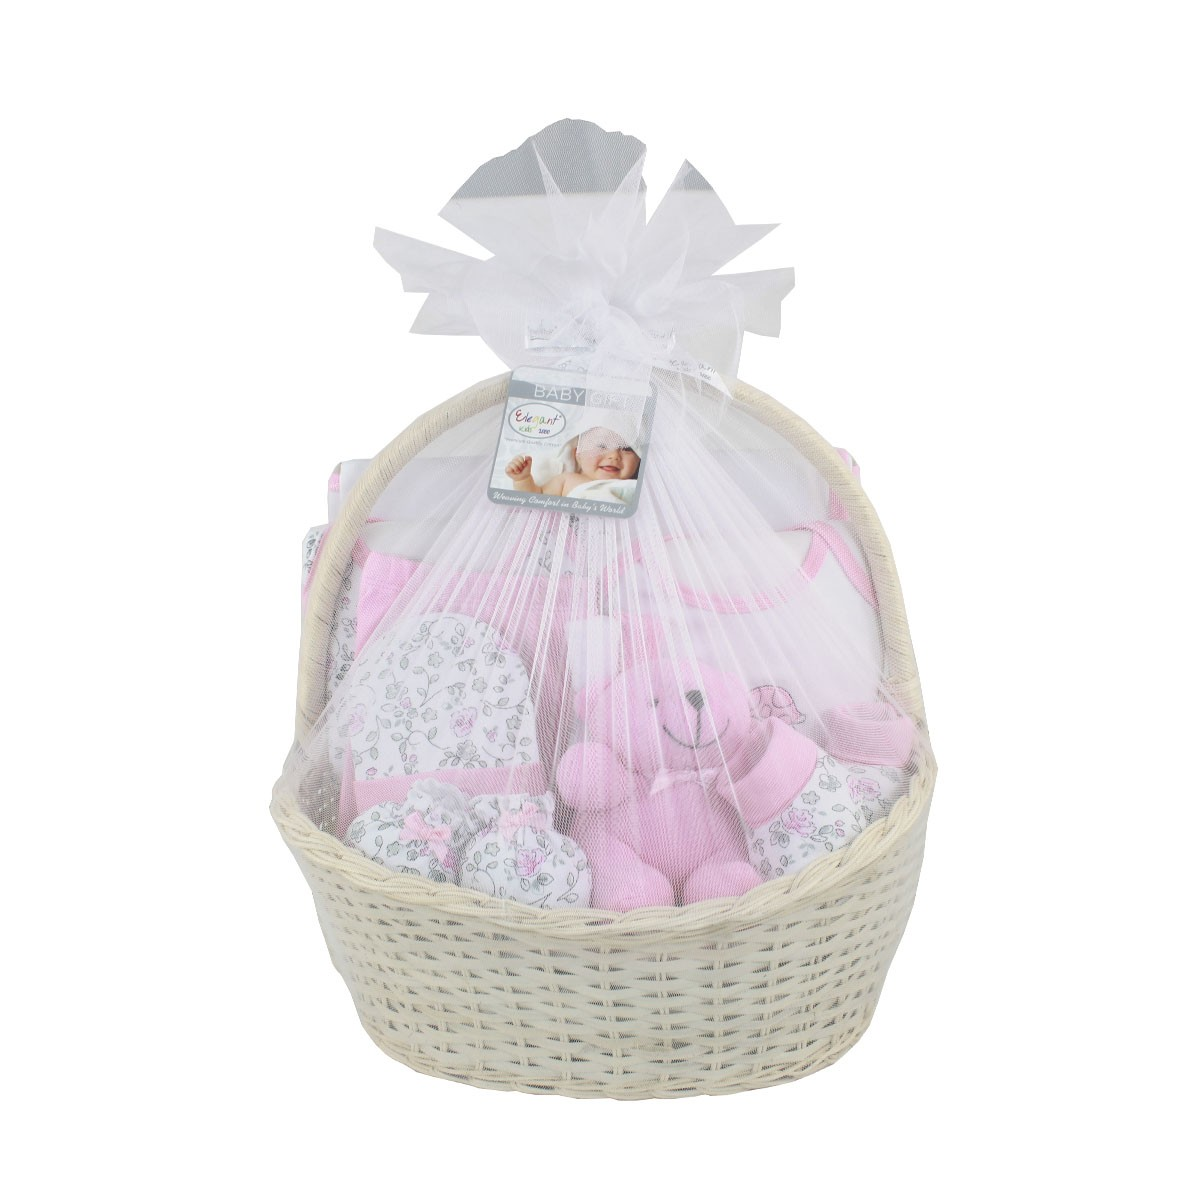 Diy do it yourself baby basket no4 for lilsoft baby diy do it yourself baby basket no4 solutioingenieria Image collections